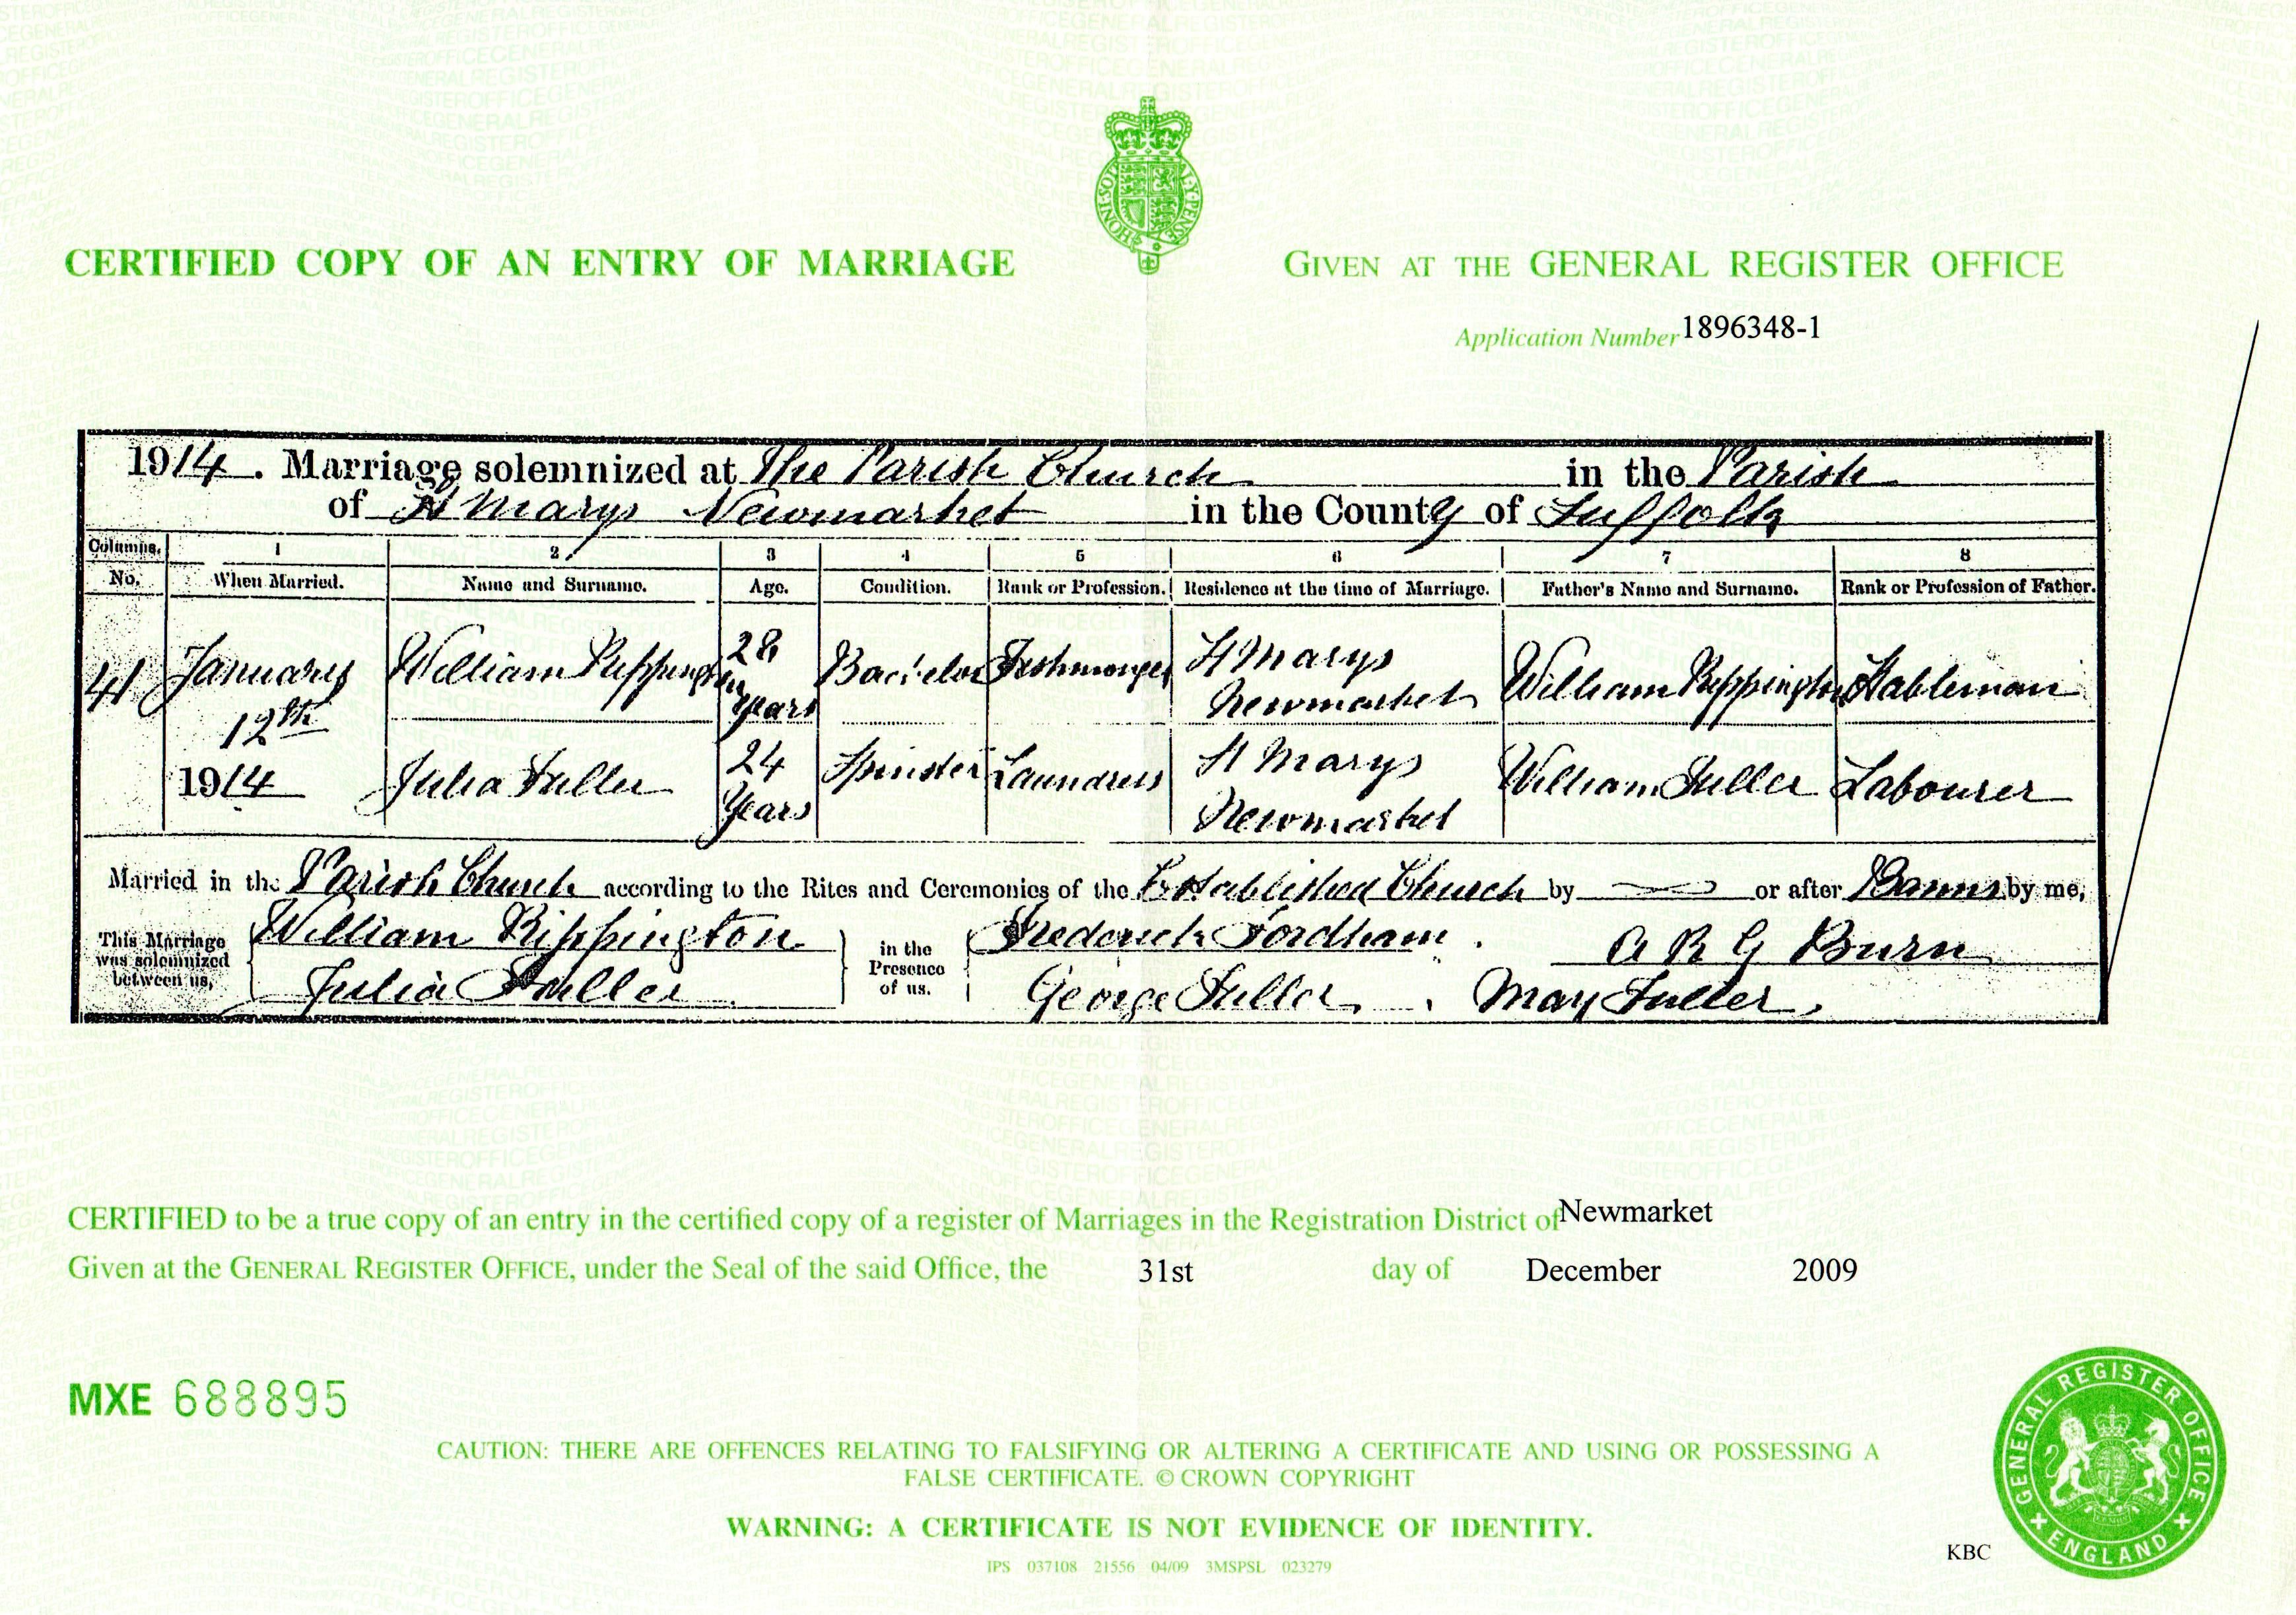 Certified copy of an entry of marriage rippington william fuller julia 1914 marriage certificate xflitez Gallery